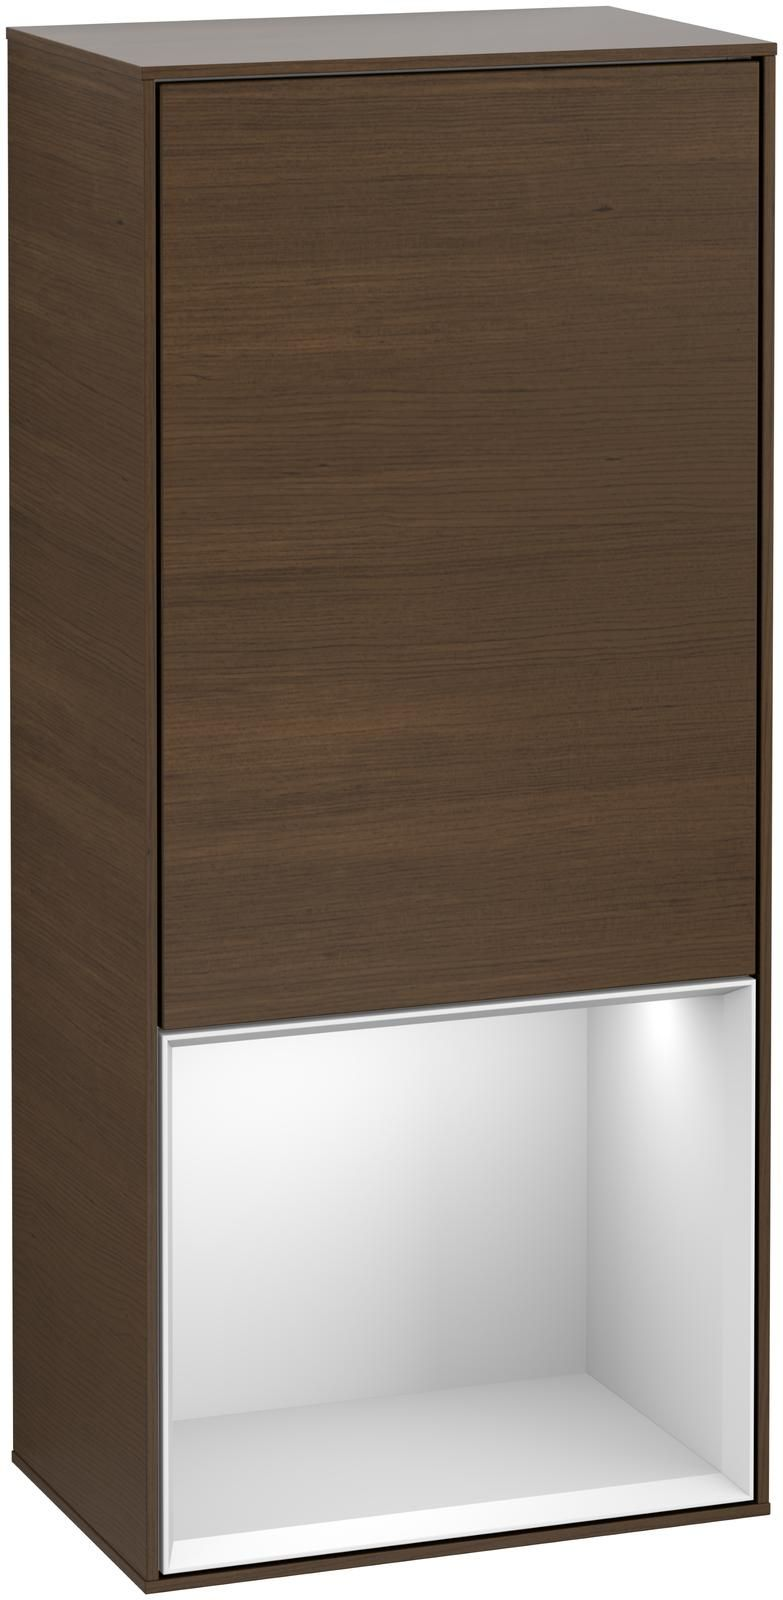 Villeroy & Boch Finion F54 Seitenschrank mit Regalelement 1 Tür Anschlag links LED-Beleuchtung B:41,8xH:93,6xT:27cm Front, Korpus: Walnut Veneer, Regal: Weiß Matt Soft Grey F540MTGN